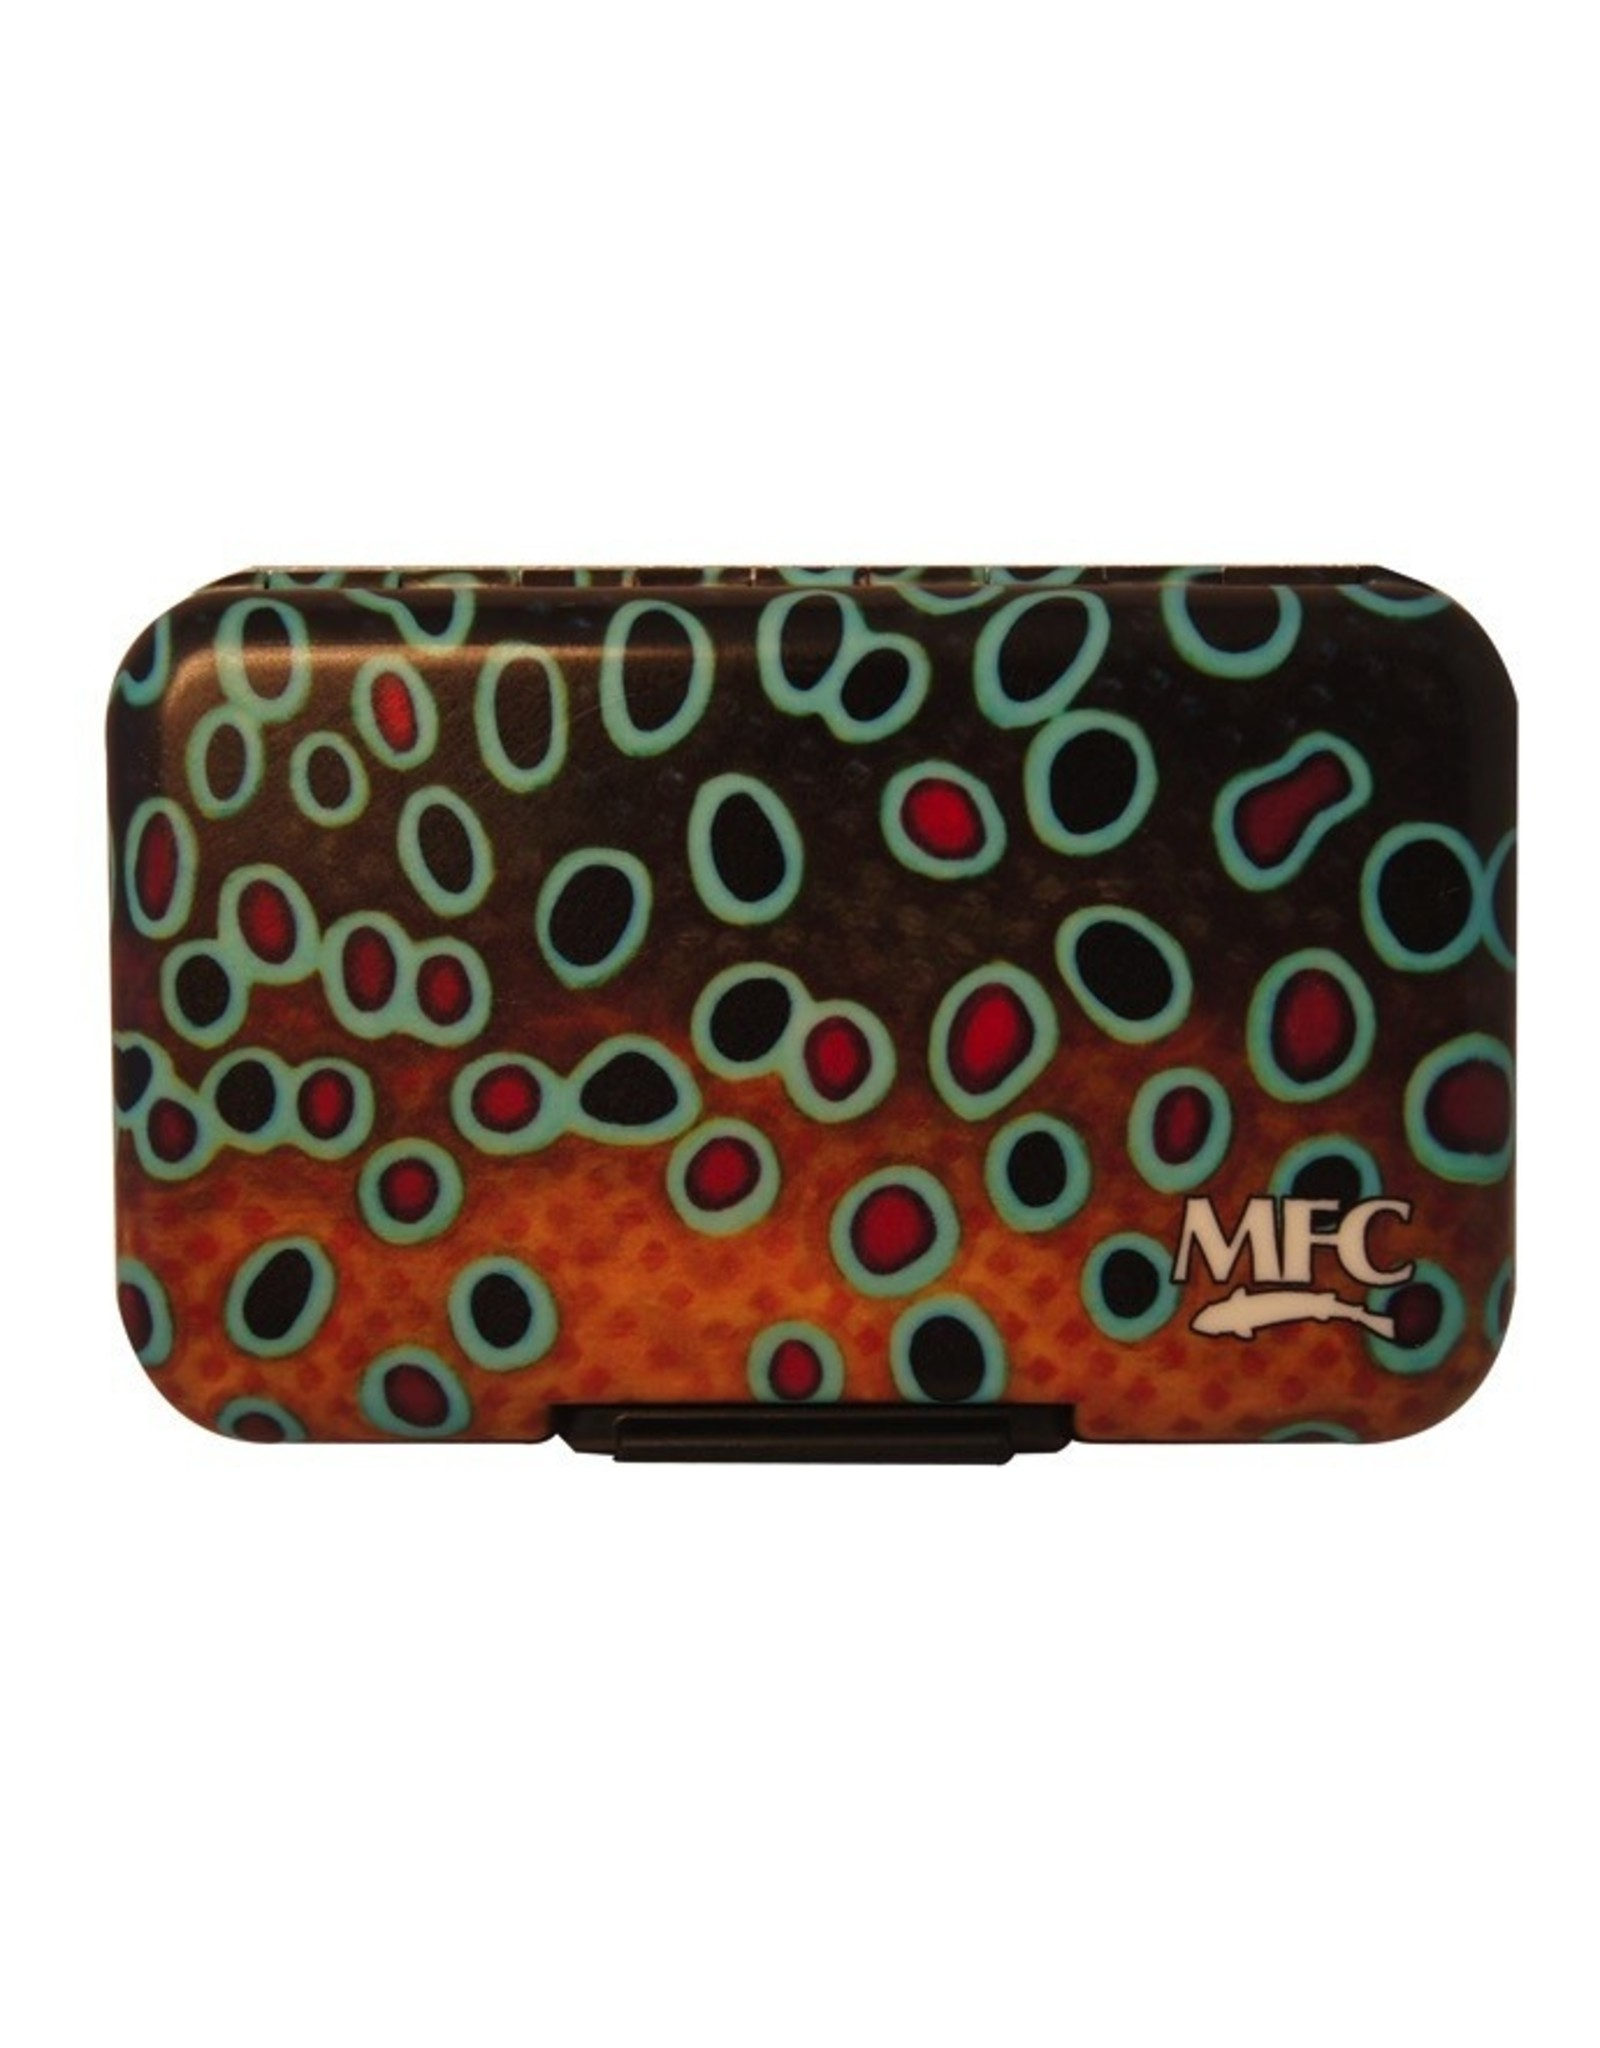 MFC MFC Fly Box Poly Maddox's Brown XVI